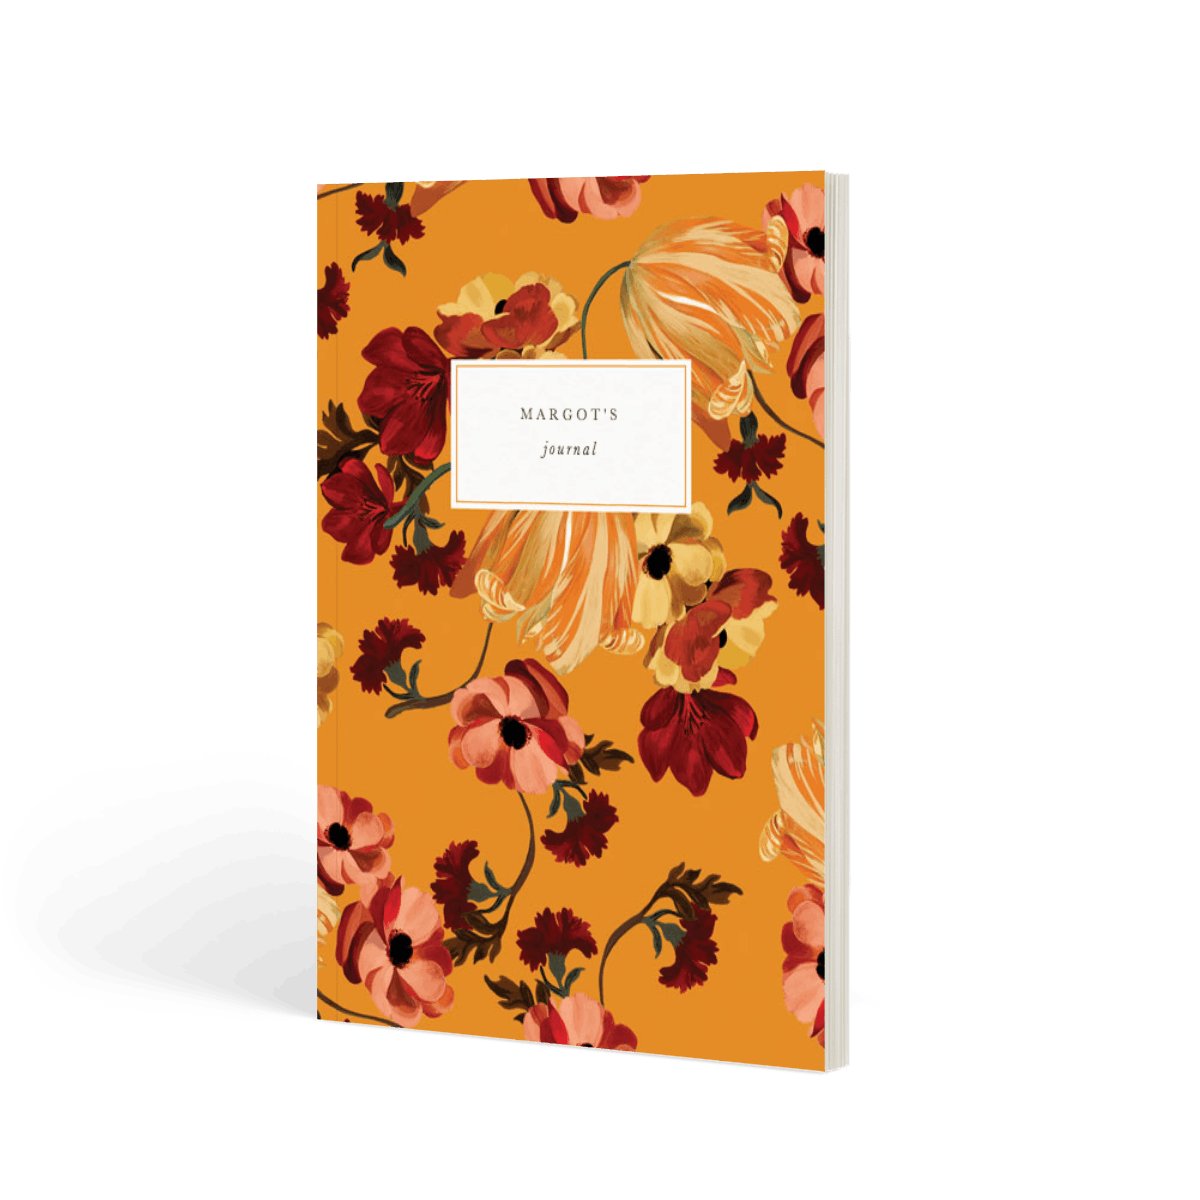 Https%3a%2f%2fwww.papier.com%2fproduct image%2f45289%2f6%2fautumn bloom 11237 front 1567424243.png?ixlib=rb 1.1